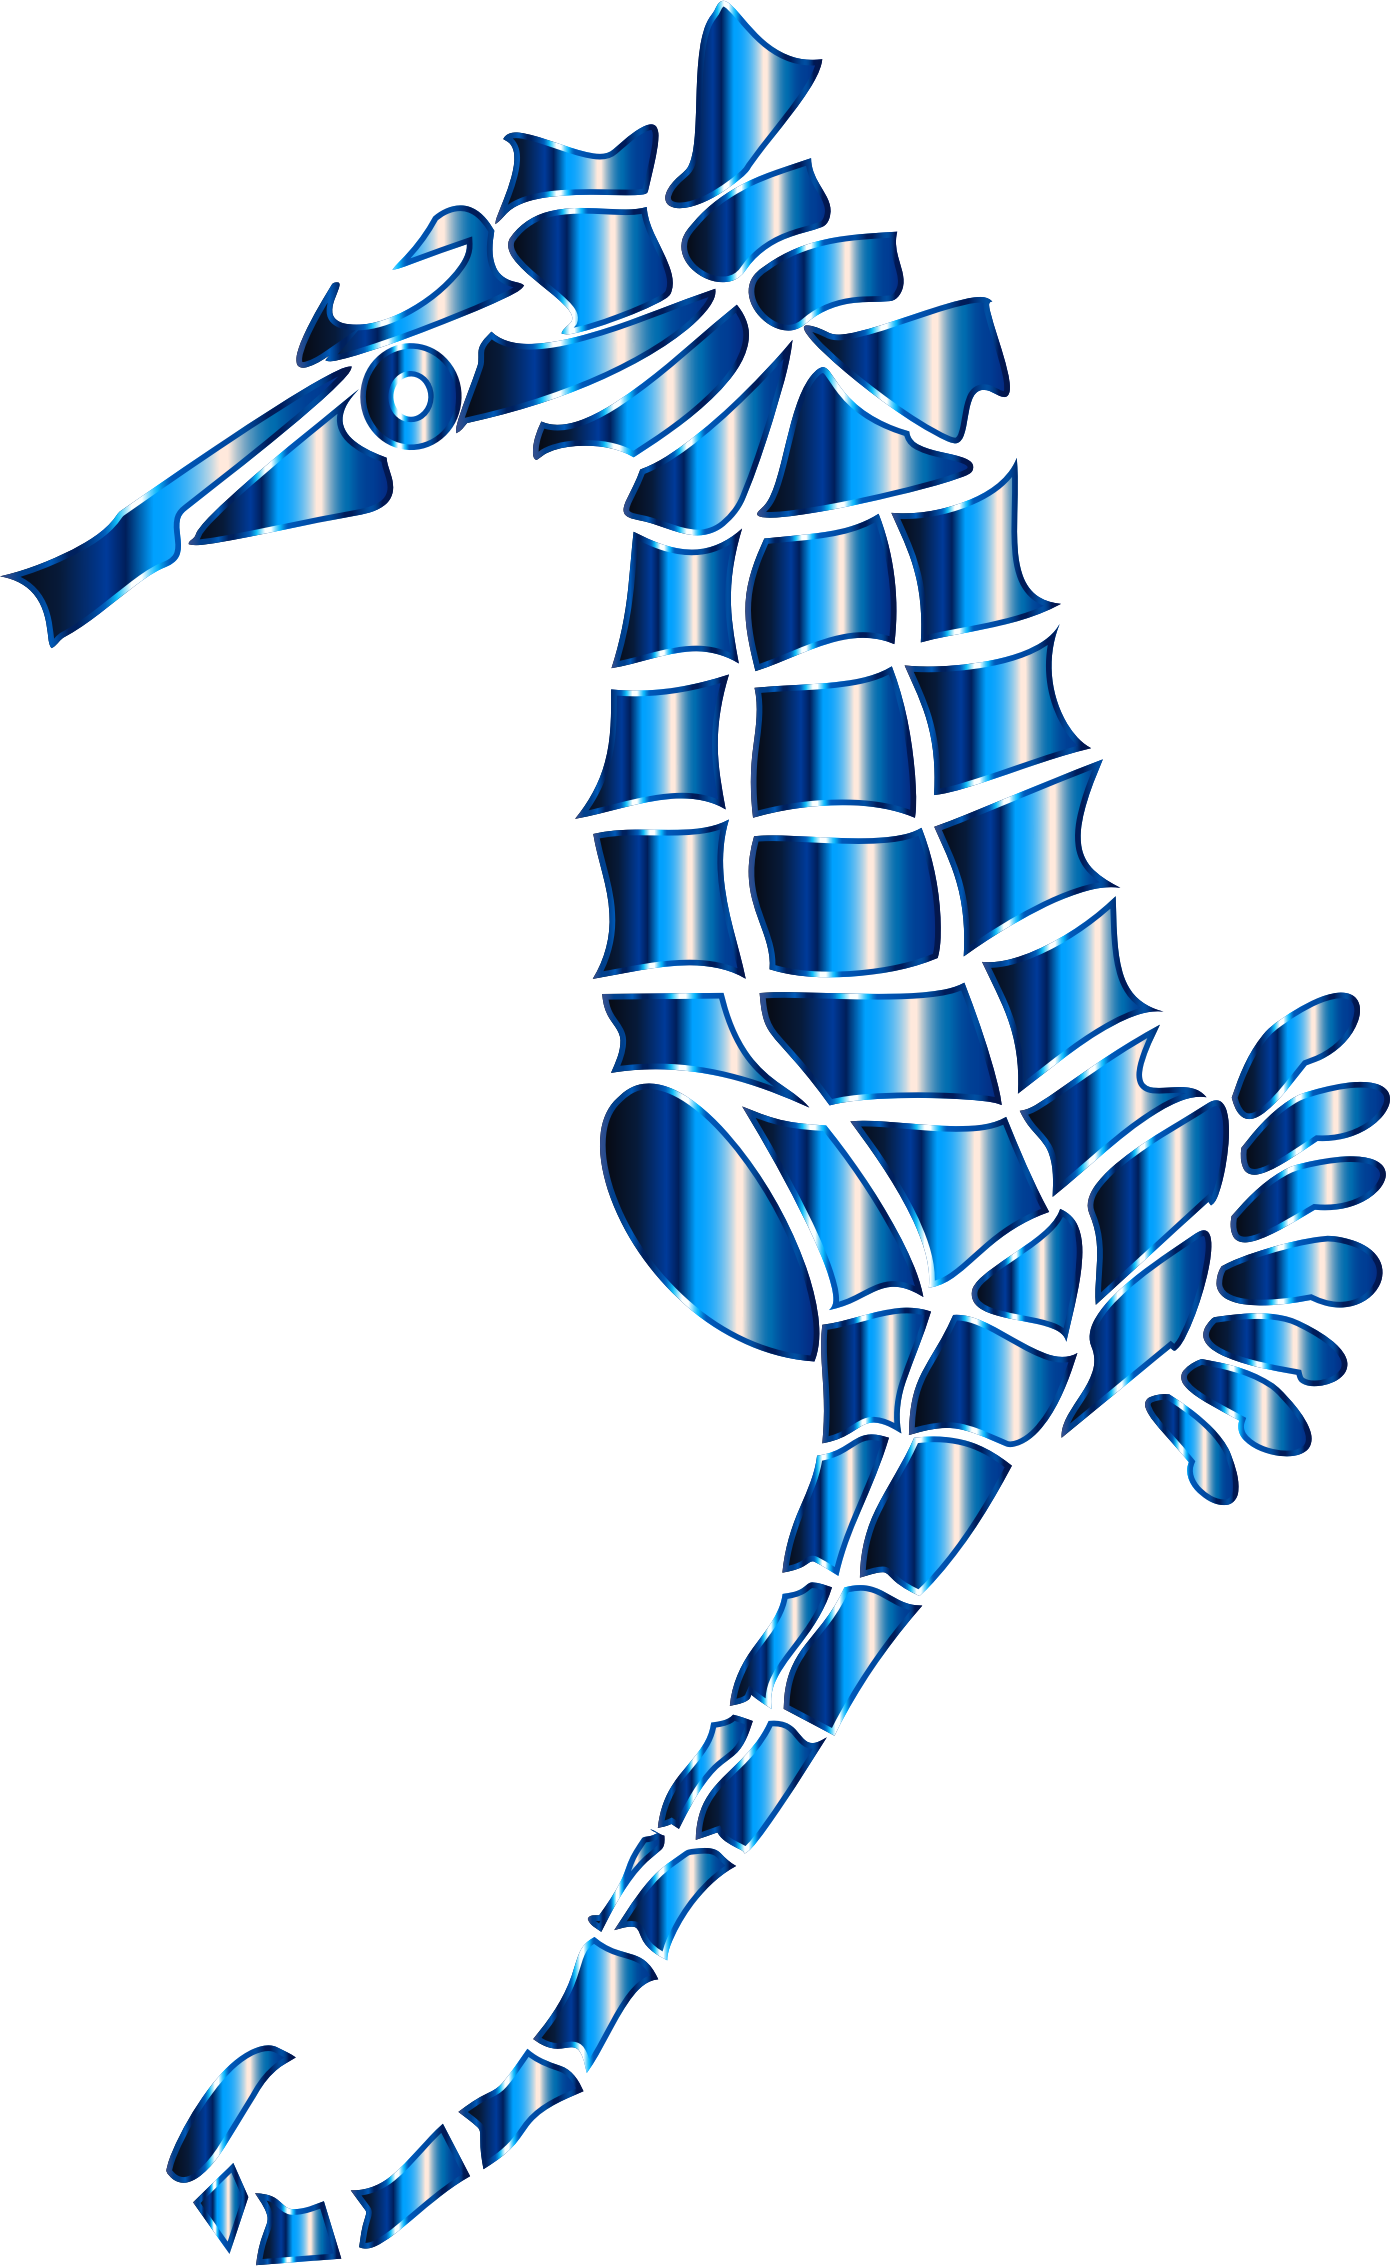 Cerulean Stylized Seahorse Silhouette No Background by GDJ